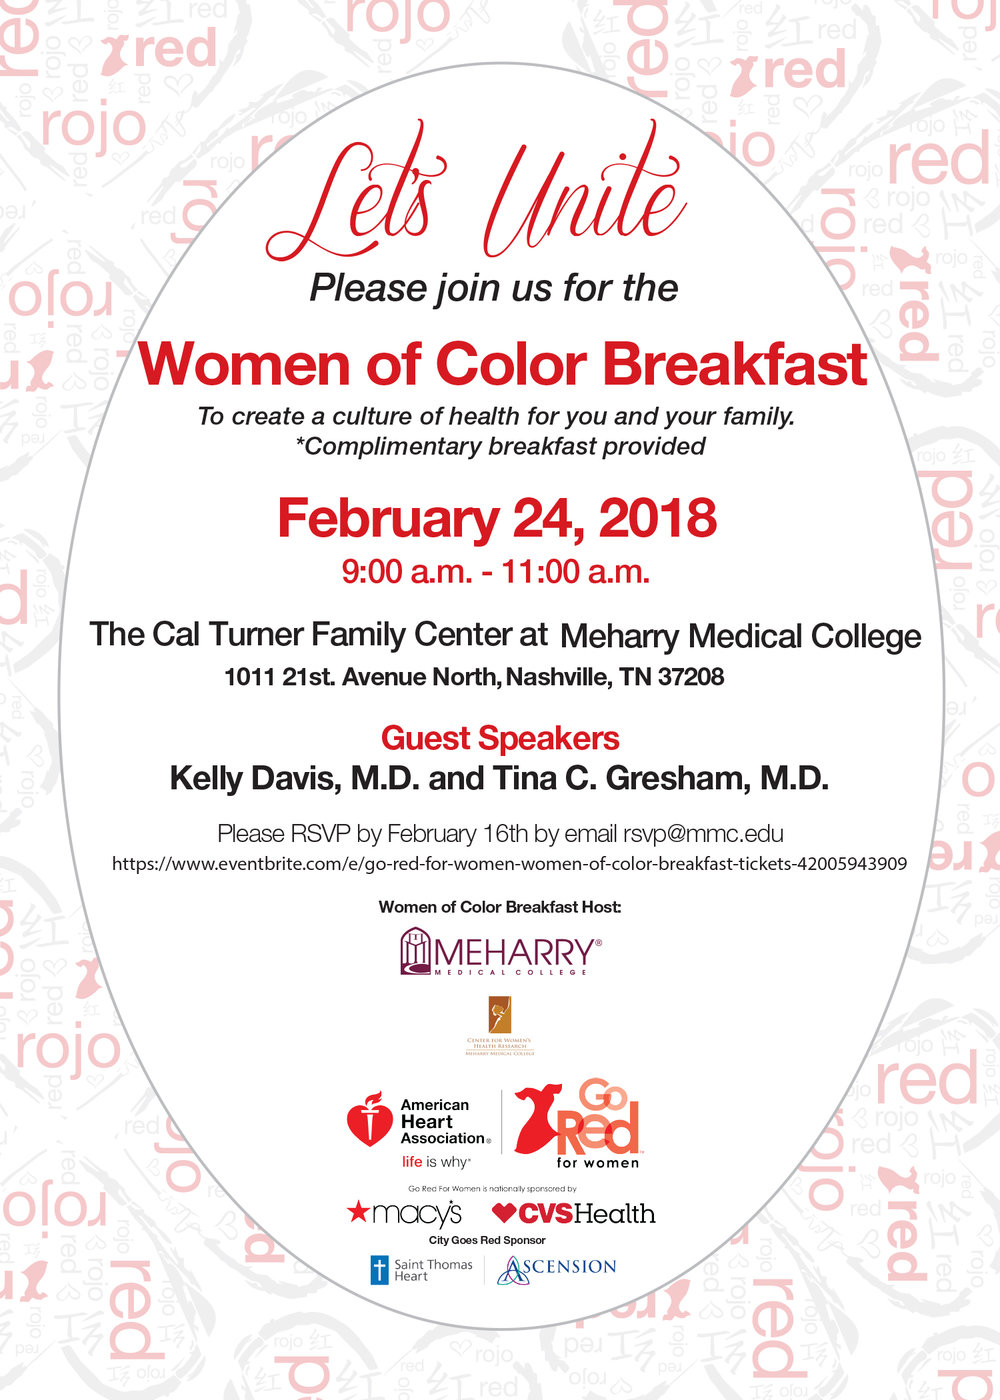 Women of Color - Saturday, February 24, 2018Women of Color Breakfast, Healthy Heart Choices, @ The Cal Turner Family Center.